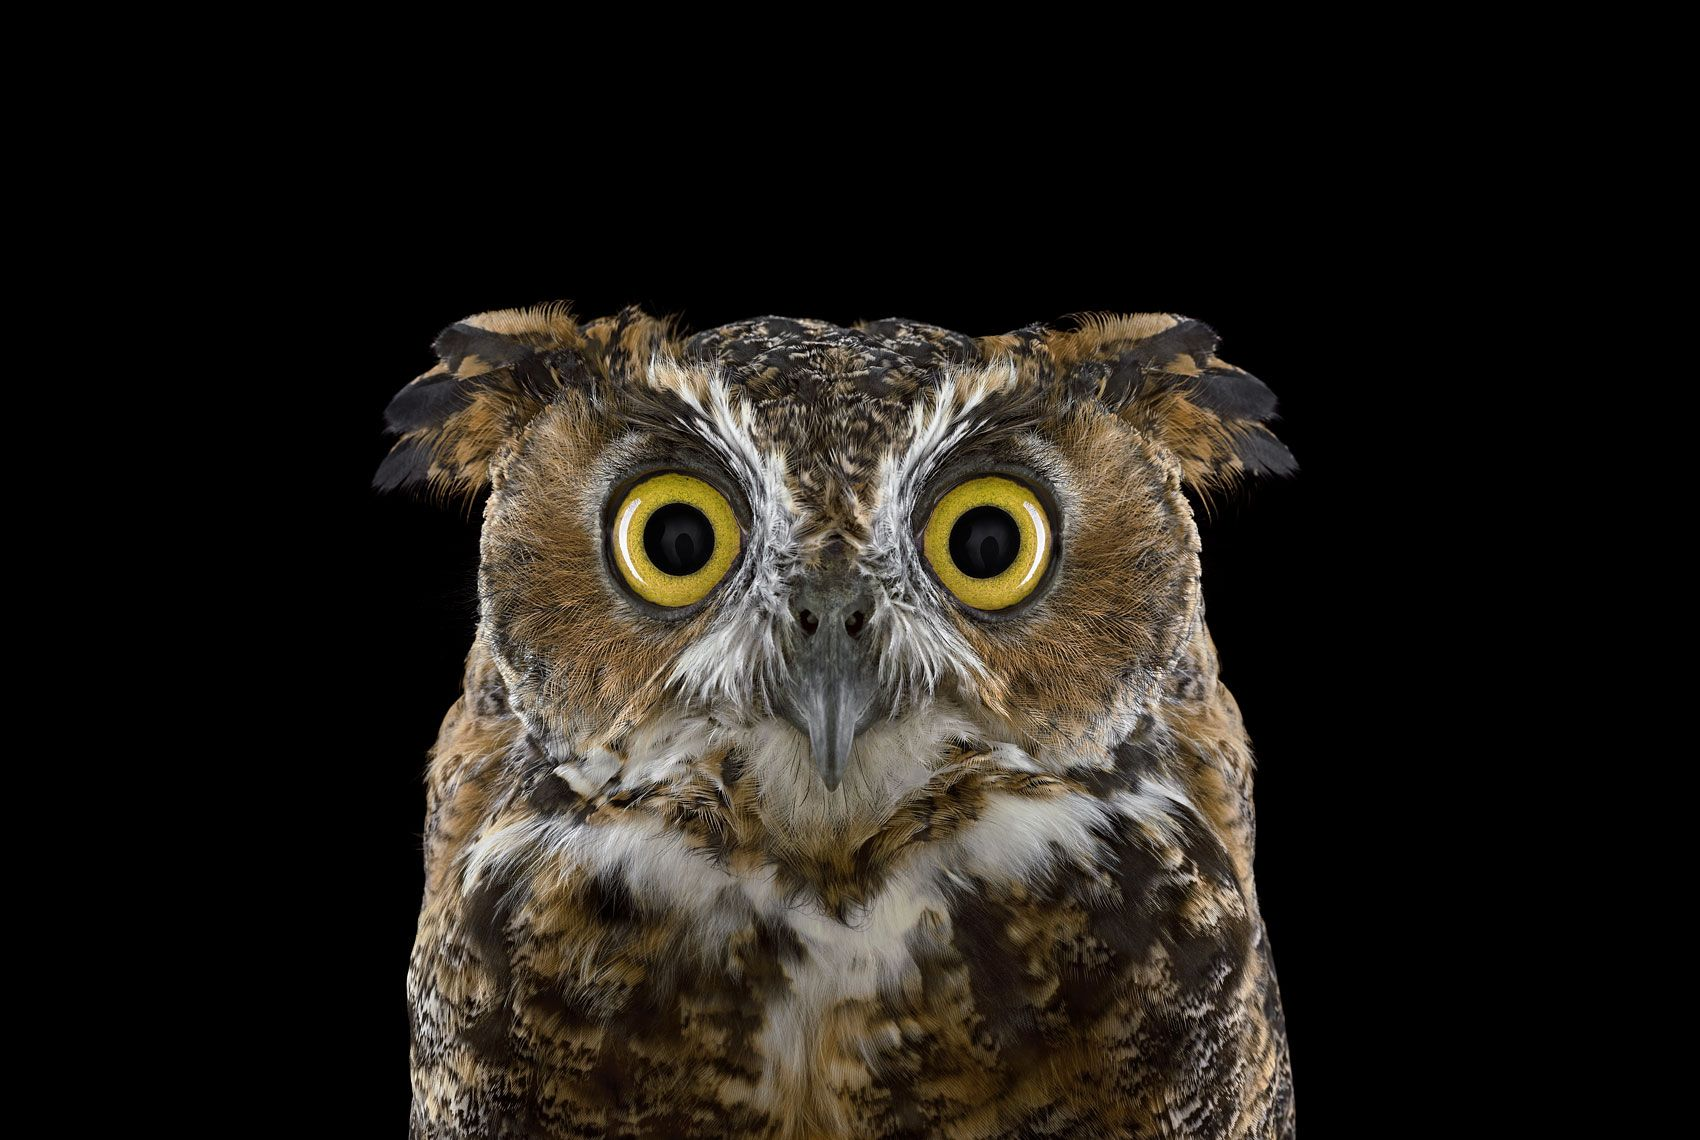 Great Horned Owl #3, Espanola, NM, 2011,Brad Wilson,Photographie